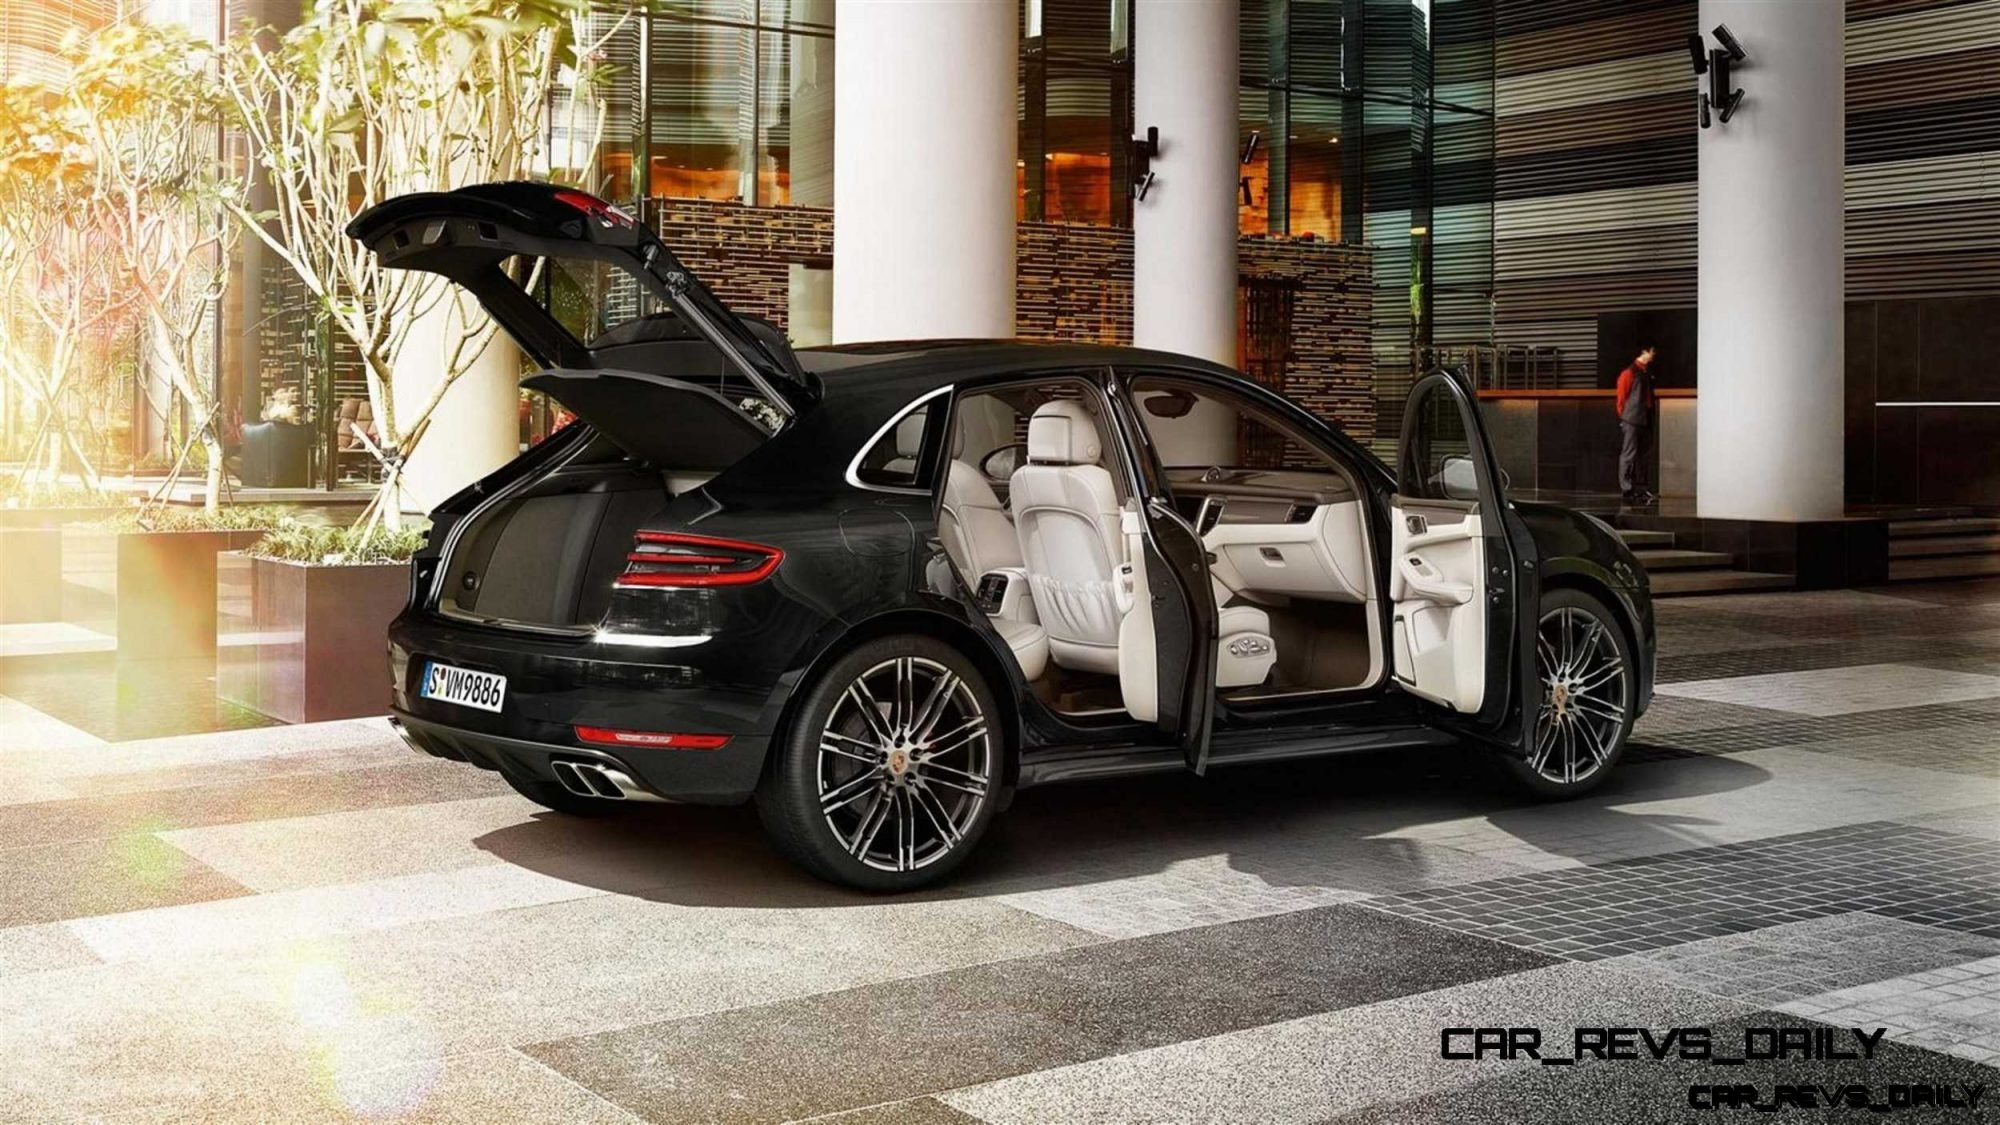 2015 Porsche Macan - Latest Images - CarRevsDaily.com 27